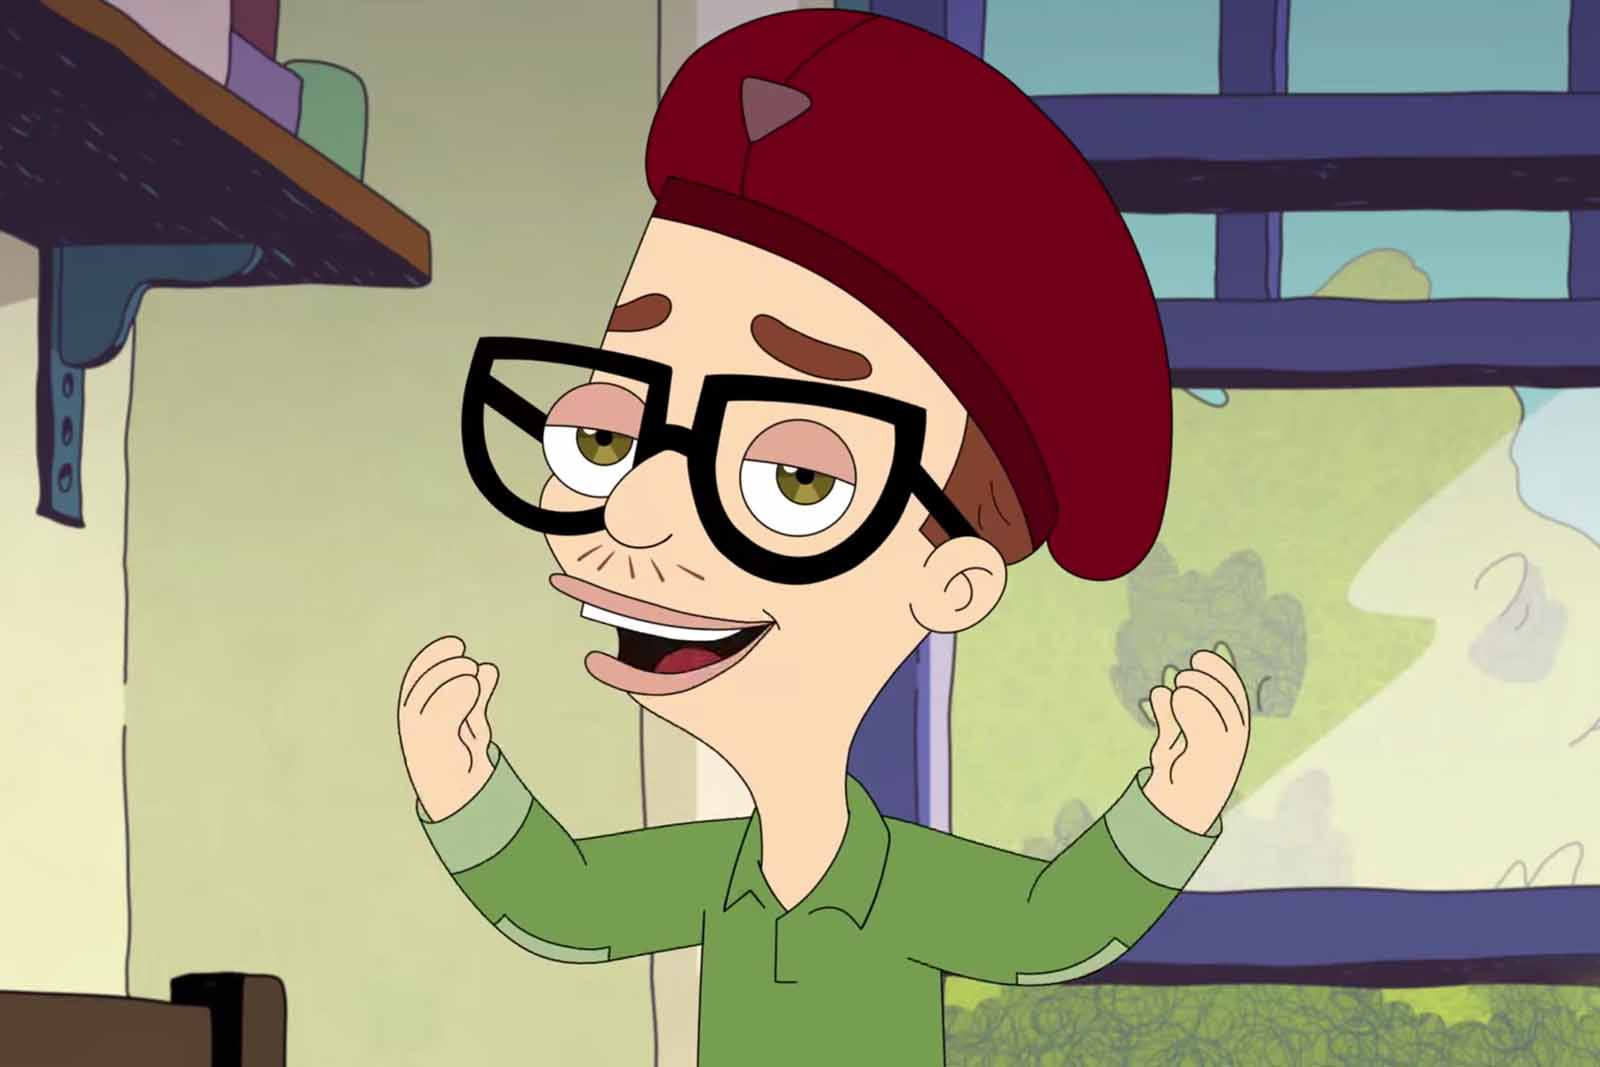 Jenny Slate stepped down from voicing Missy on 'Big Mouth'. But Missy is just one of several problematic characters on the animated series.